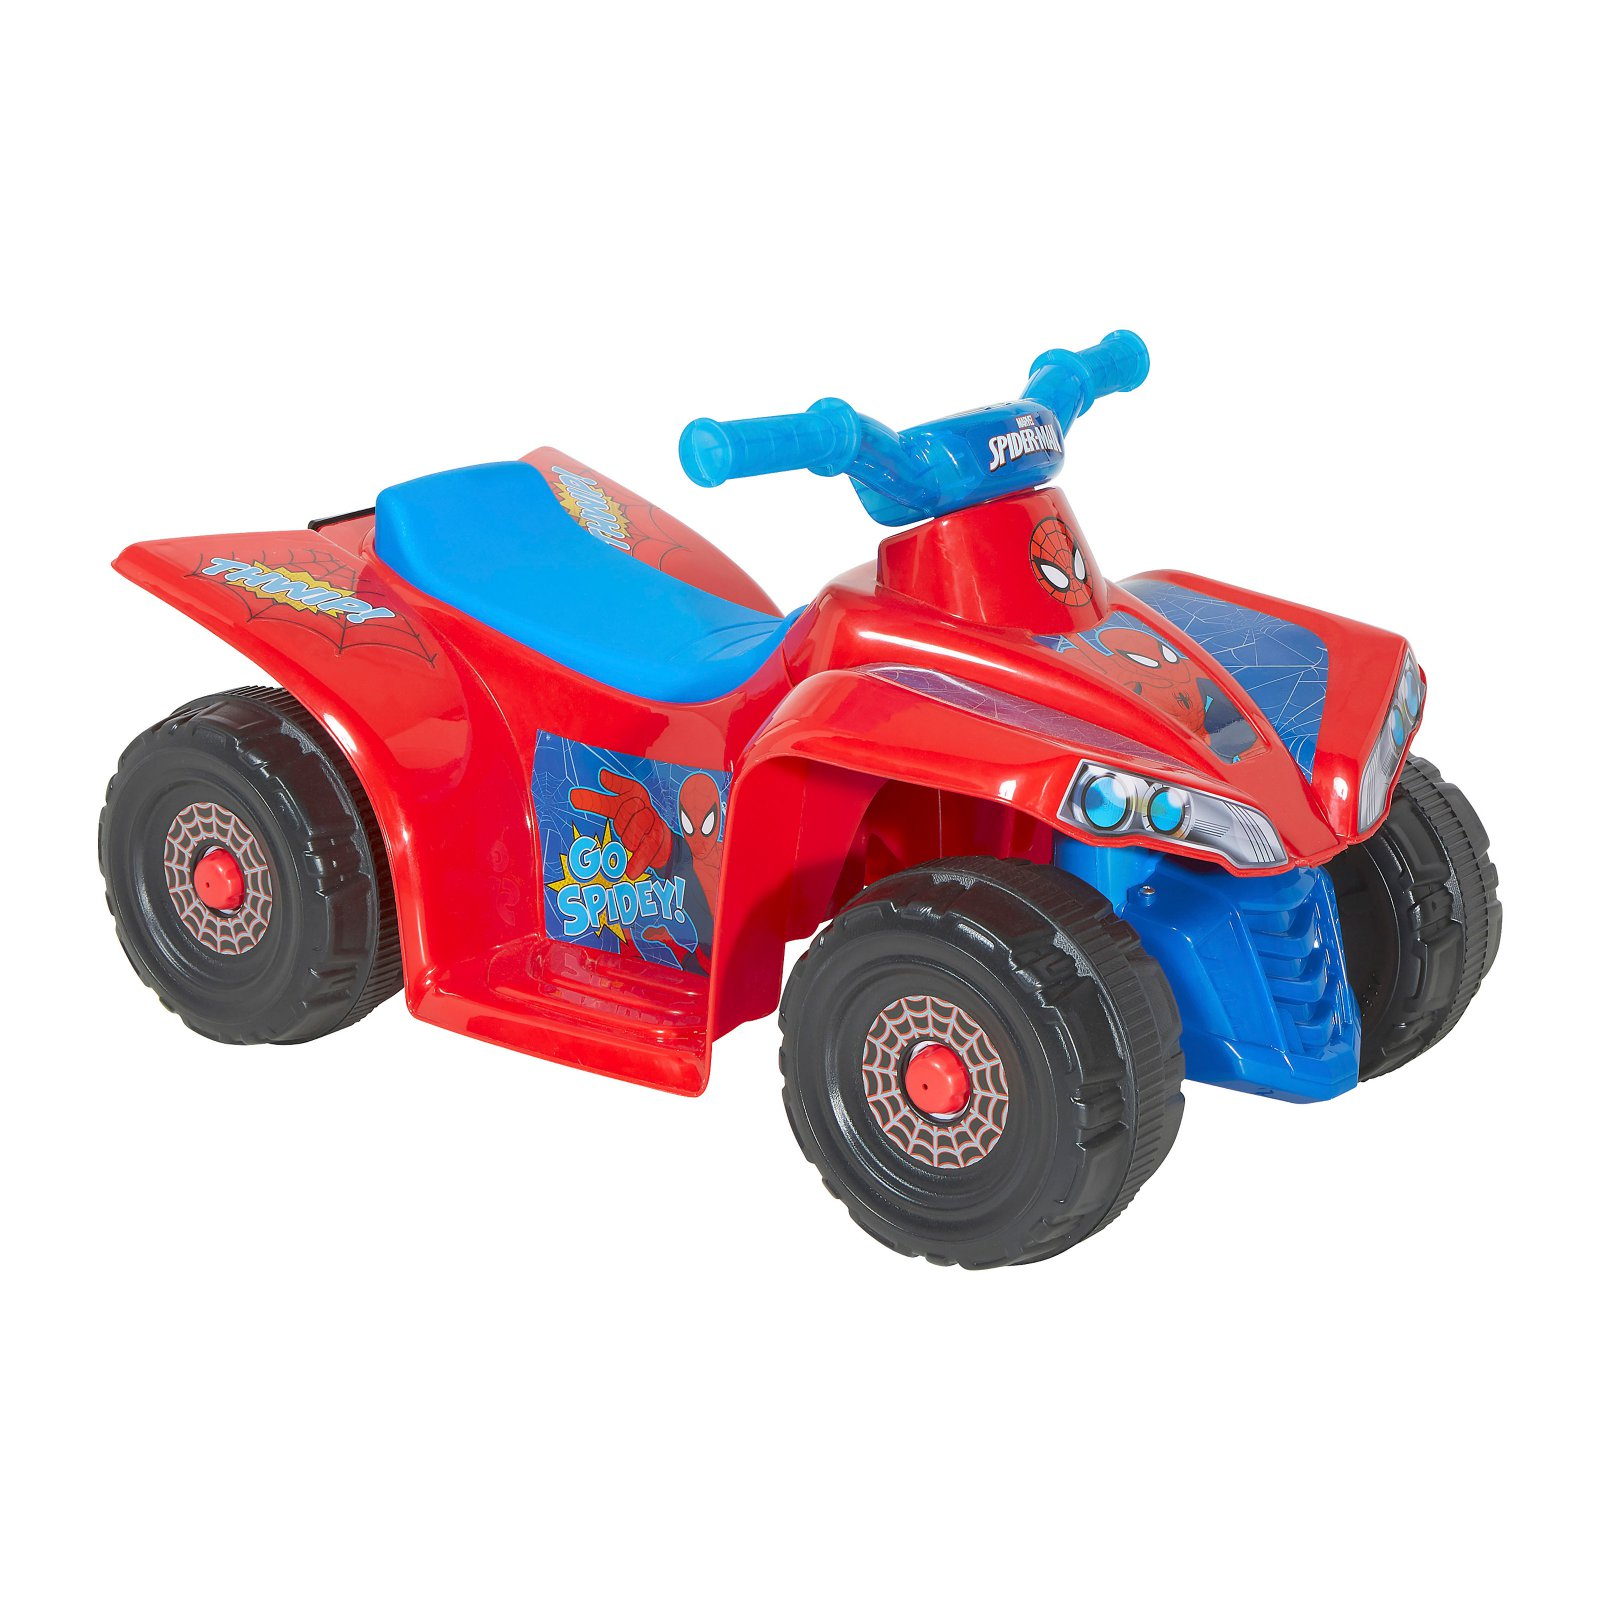 SPIDER-MAN 6V Battery Powered Little Quad Riding Toy